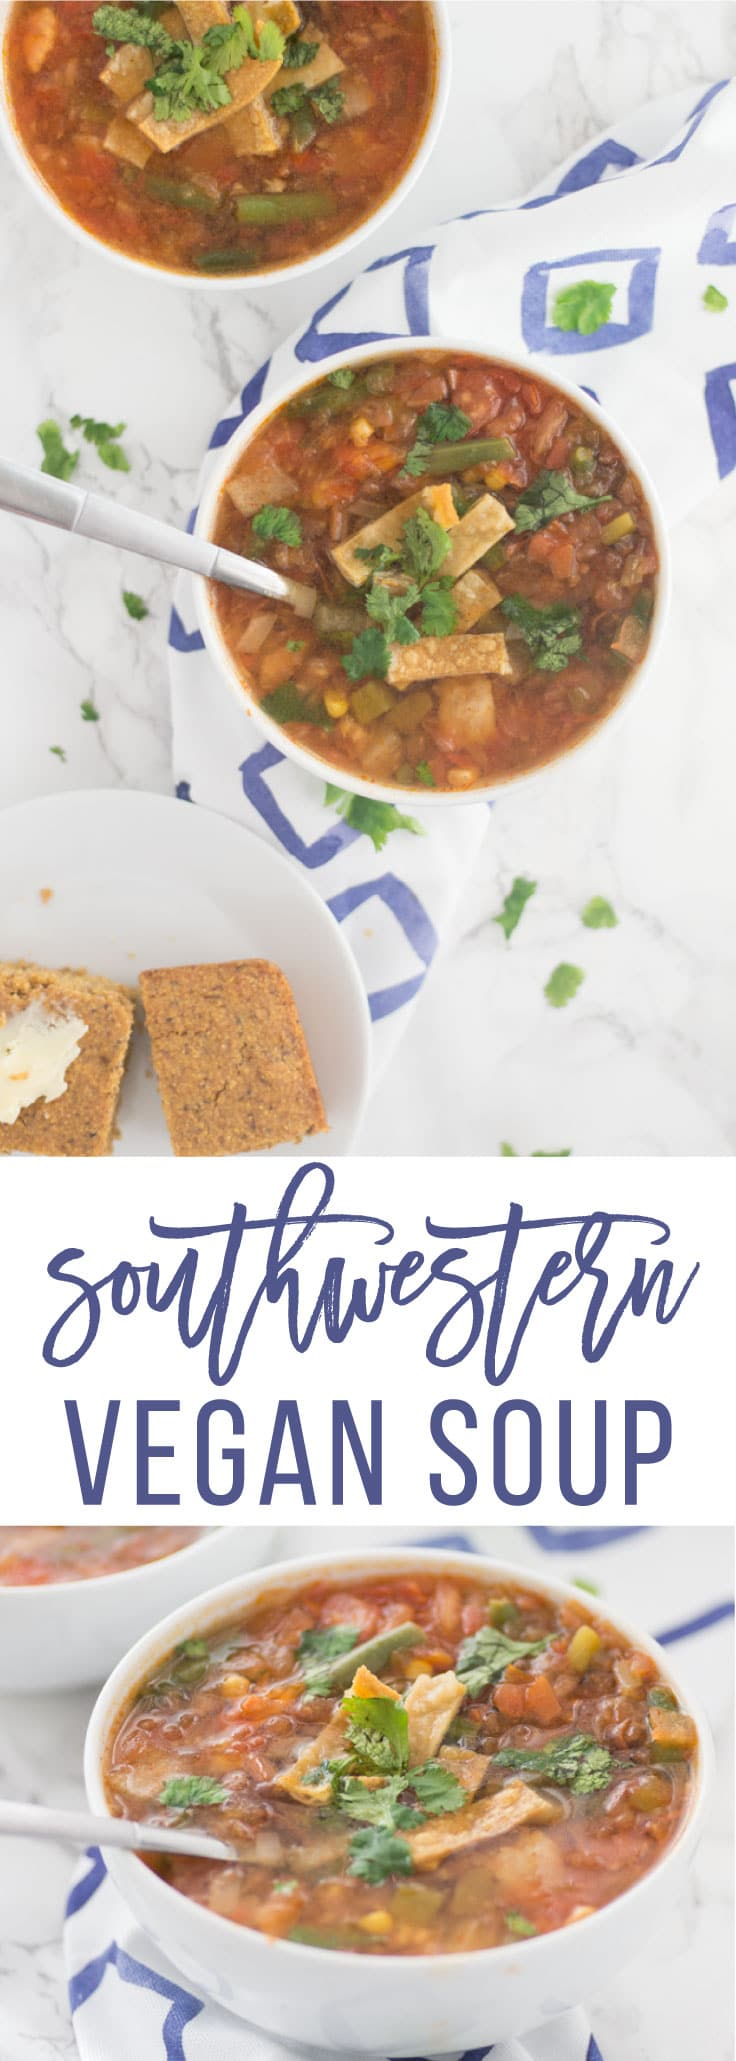 Vegan Southwestern Soup -- This classic soup recipe has all the delicious flavors, yet it's completely plant-based! Tons of vegetables, seasonings, black beans, and a fresh tomato broth makes this soup so TASTY. Pair with cornbread for the ultimate meal! #cleaneating #healthy #soup #vegann #vegetarian #glutenfree #plantbased - mindfulavocao